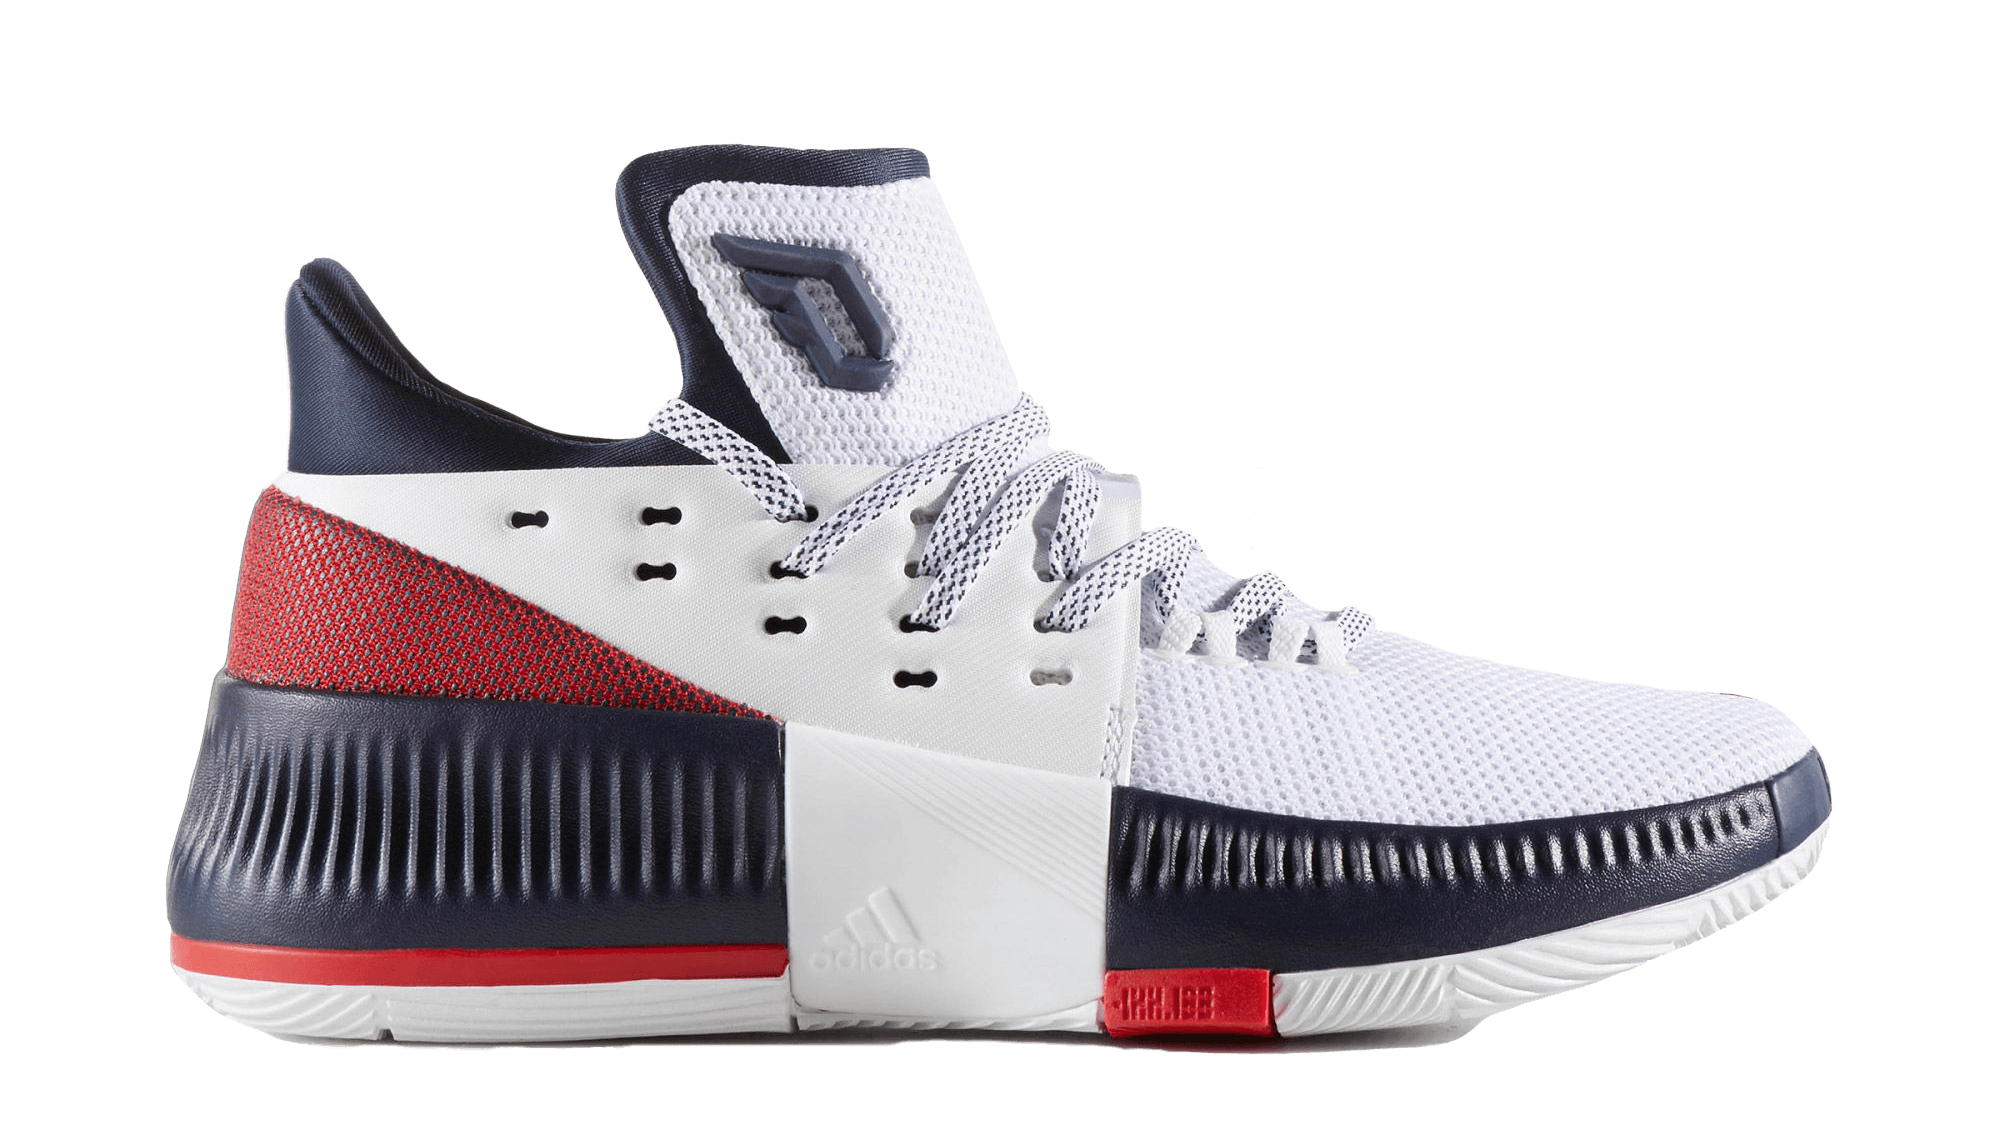 8b556940dc4b Adidas Dame 3 Performance Review